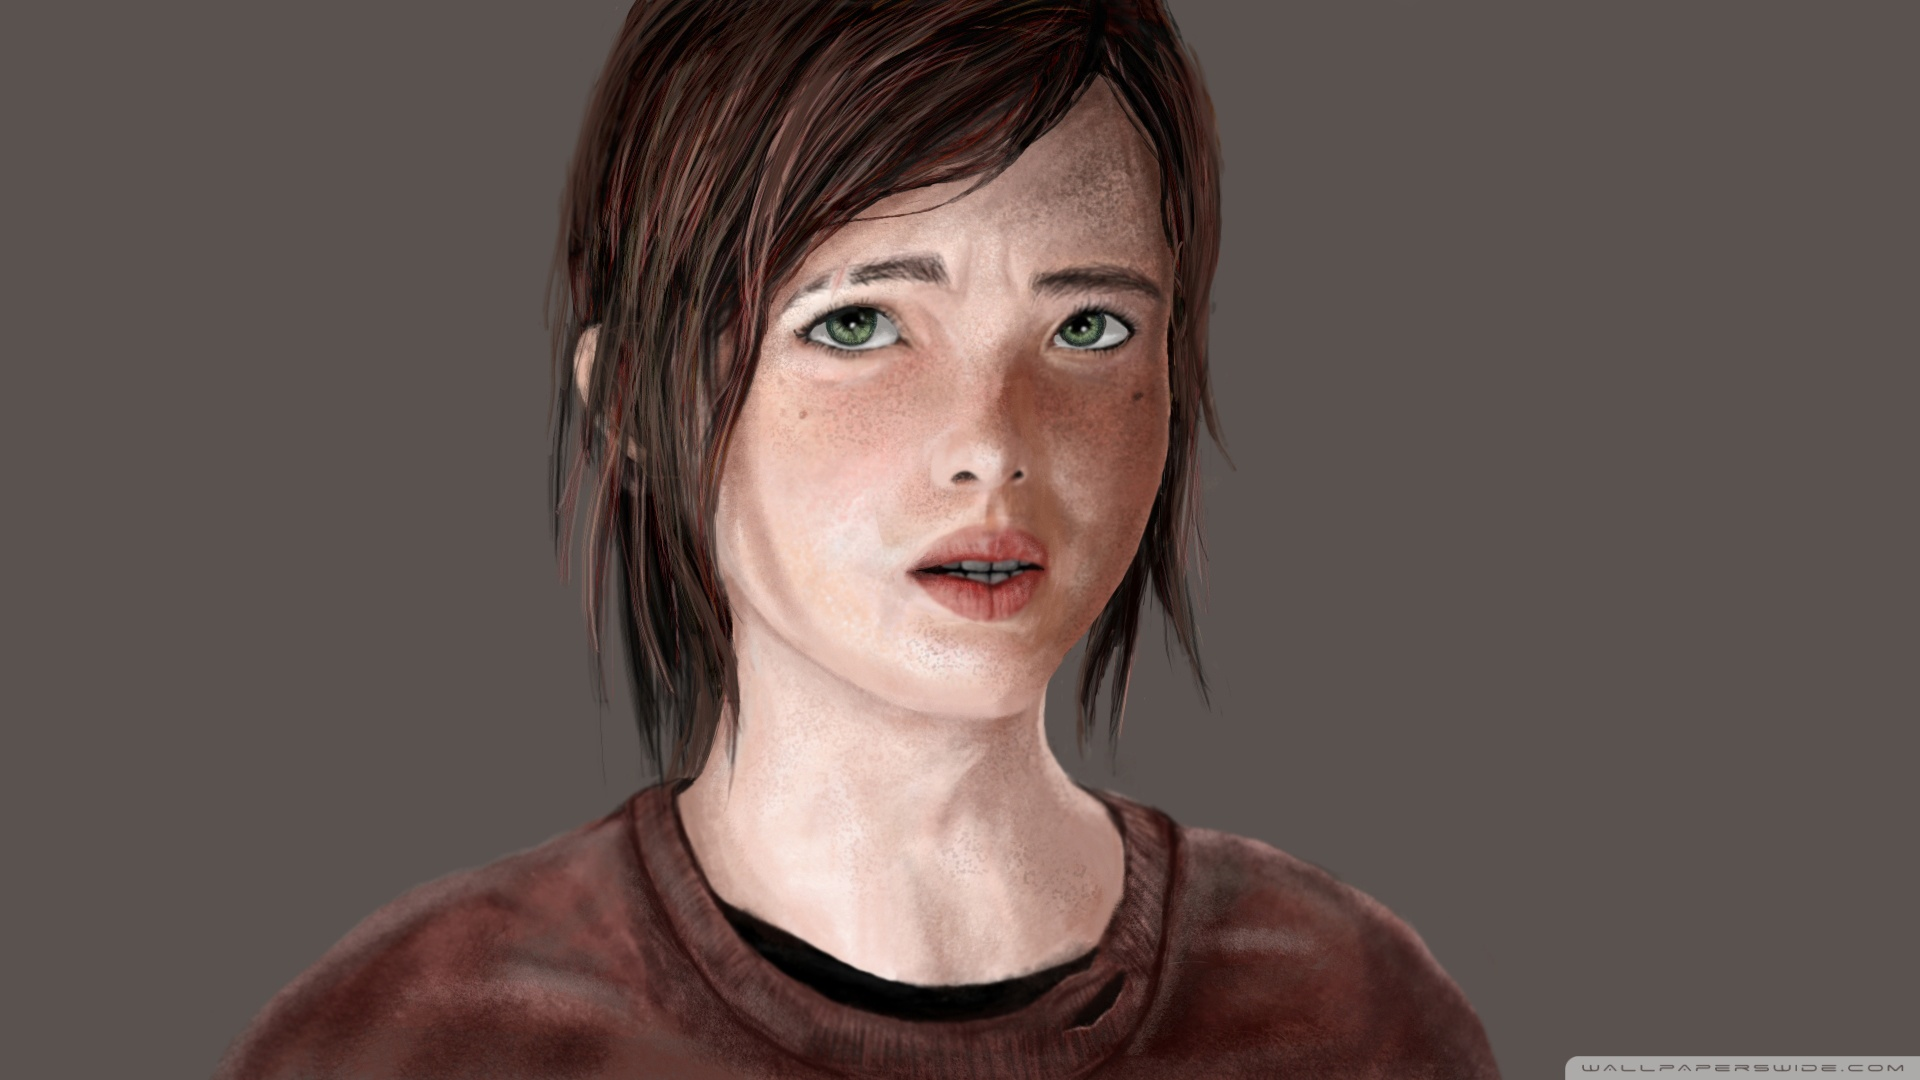 Related Wallpapers - Ellie The Last Of Us 2 , HD Wallpaper & Backgrounds